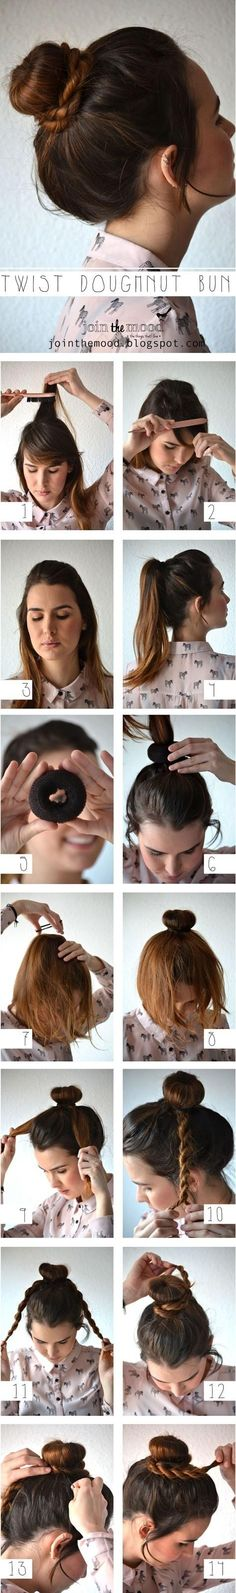 11 Interesting And Useful Hair Tutorials For Every Day, DIY Twist Doughnut Bun Hairstyle